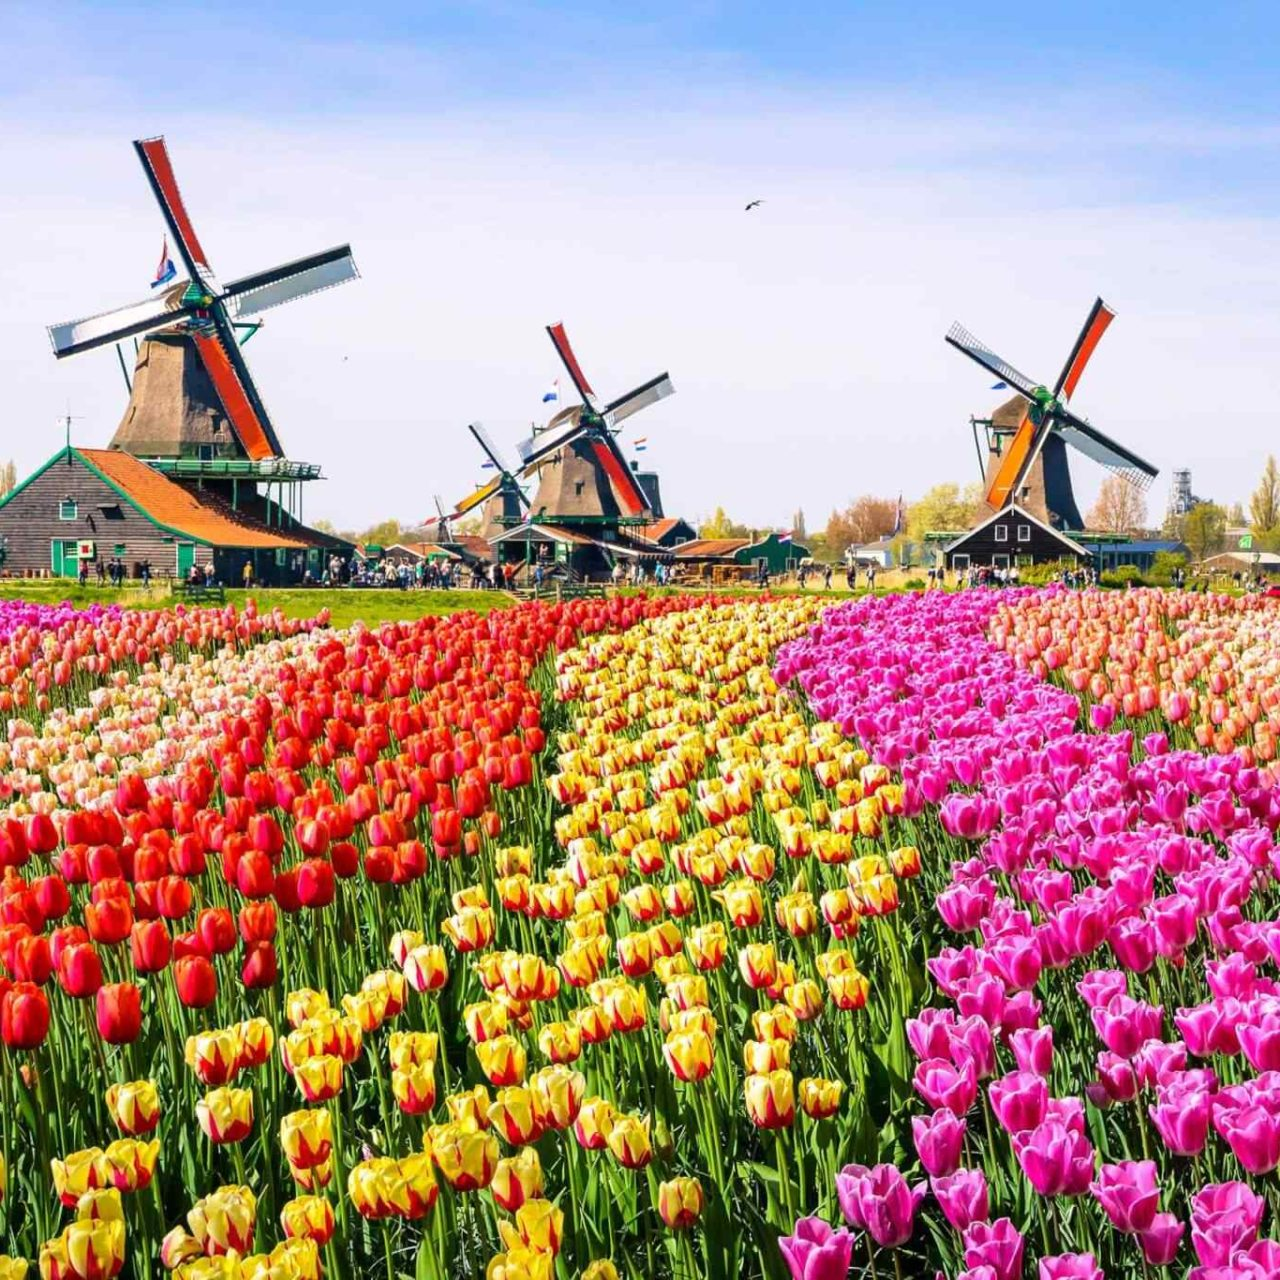 https://oltintourism.uz/wp-content/uploads/2019/06/destination-netherlands-01-1280x1280.jpg